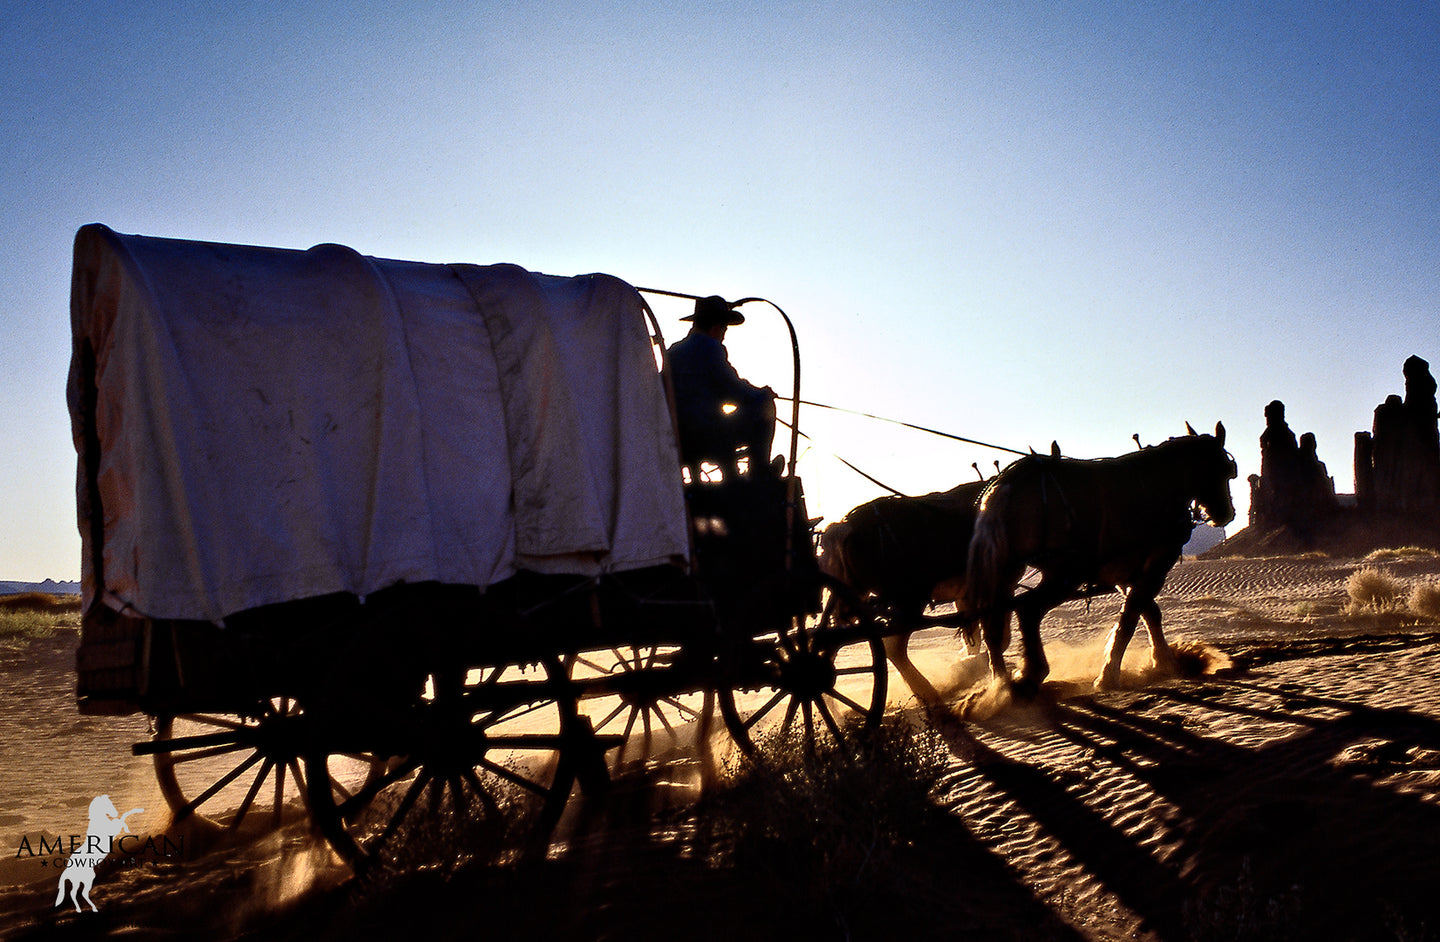 Wagon in the Sand - American Cowboy Art